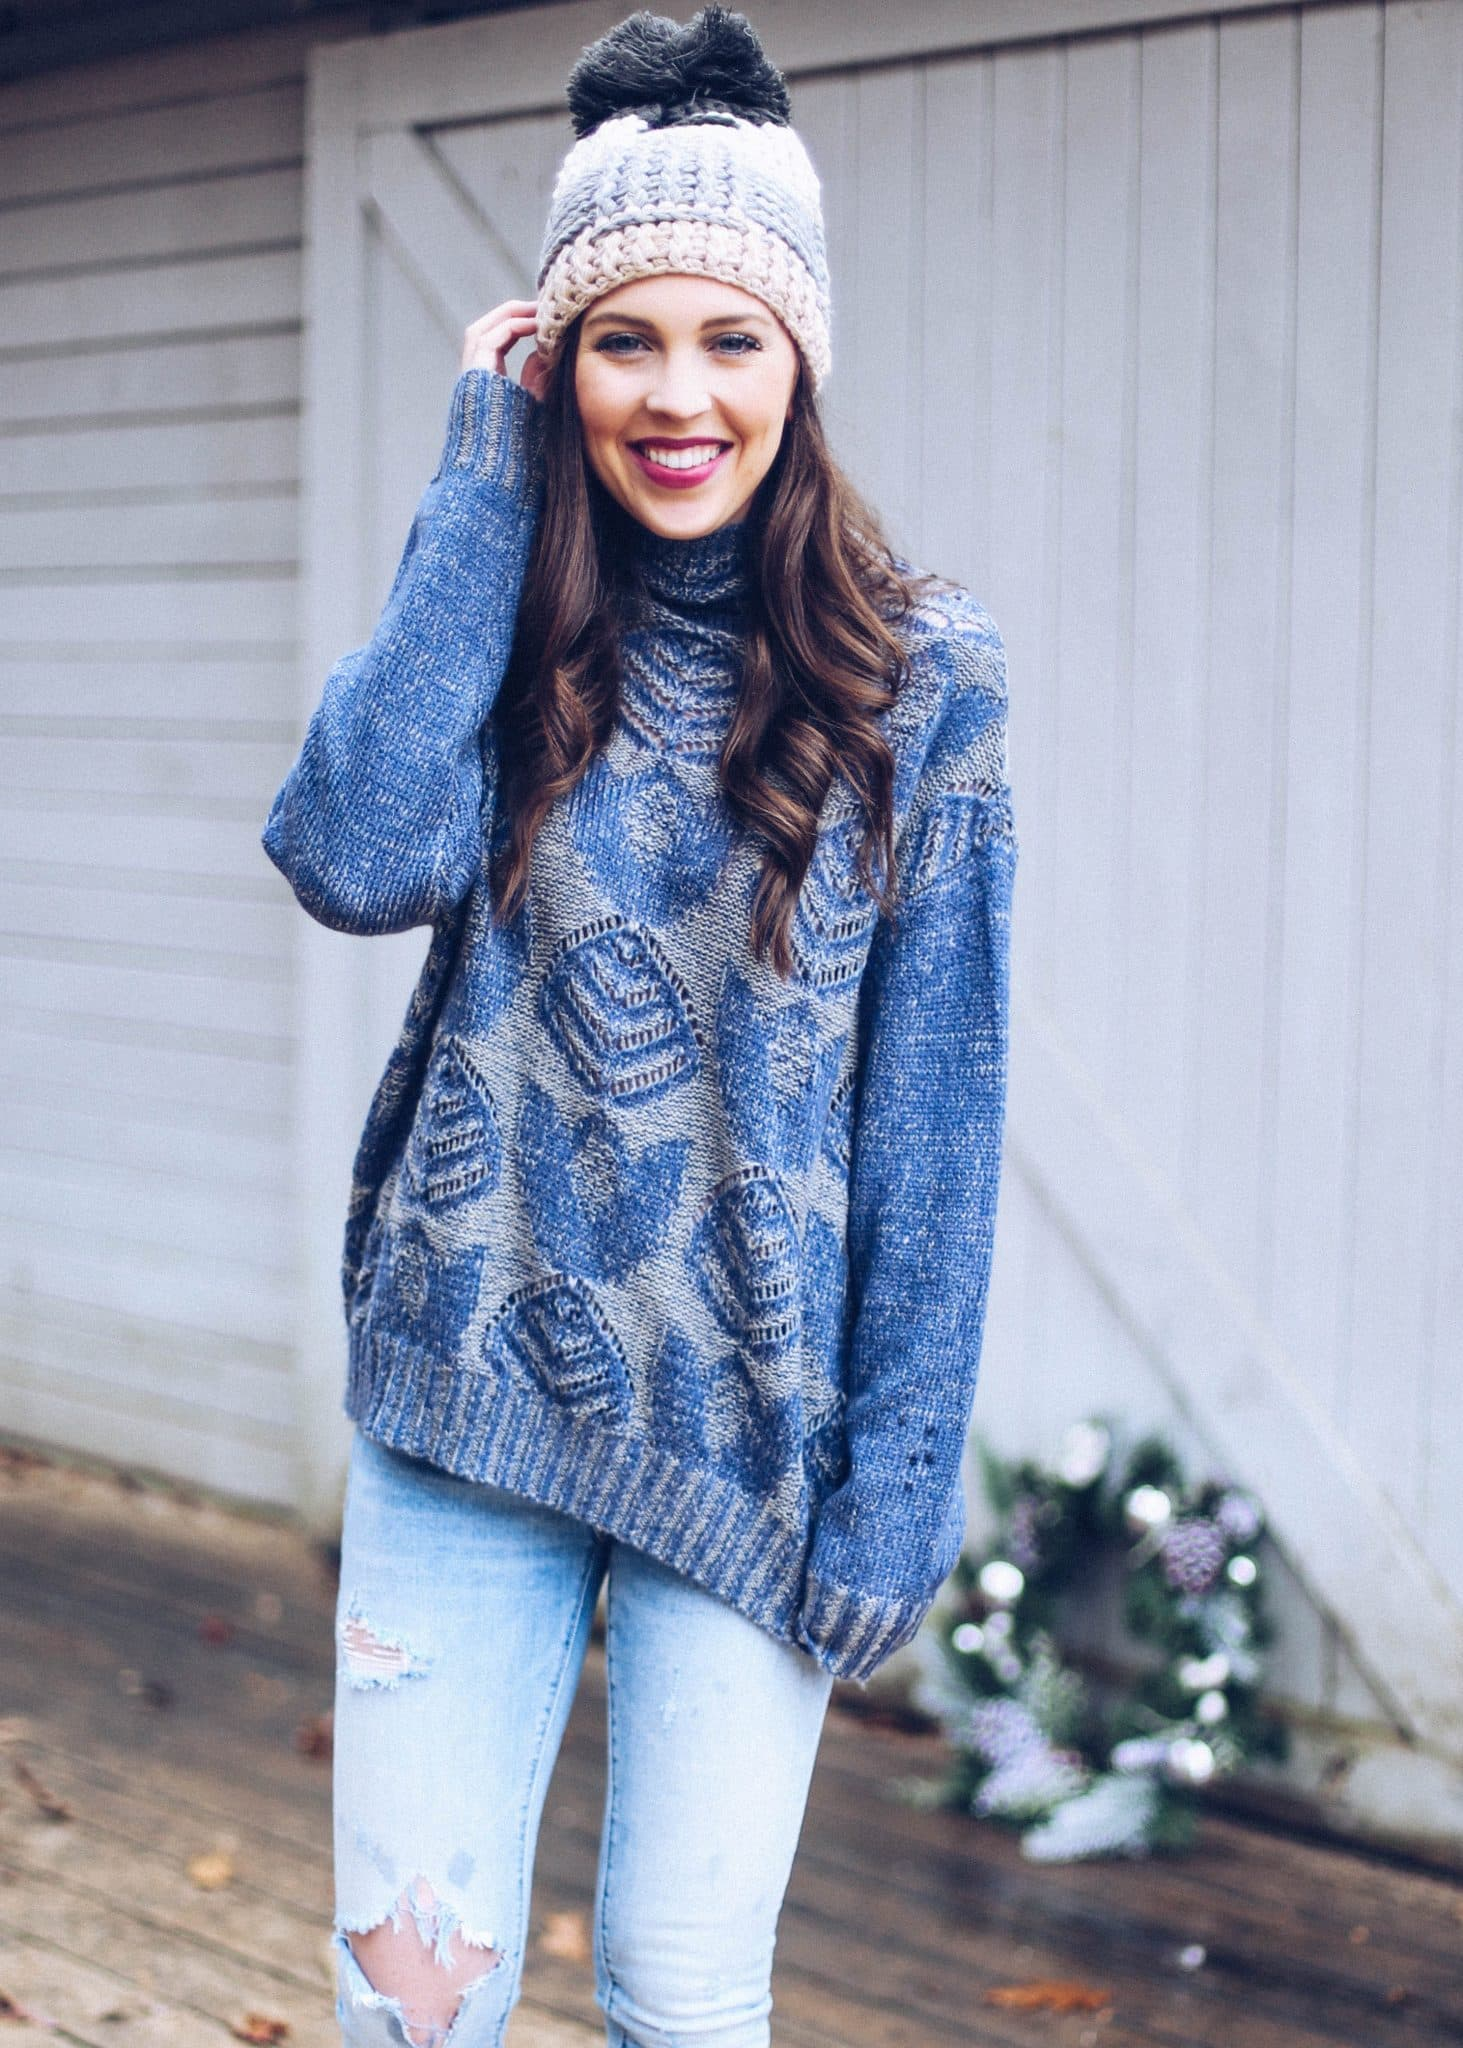 anthropologie sweater, pretty in the pines, anthropologie raleigh, nc fashion lifestyle blog, holiday giveaway, twelve days of christmas